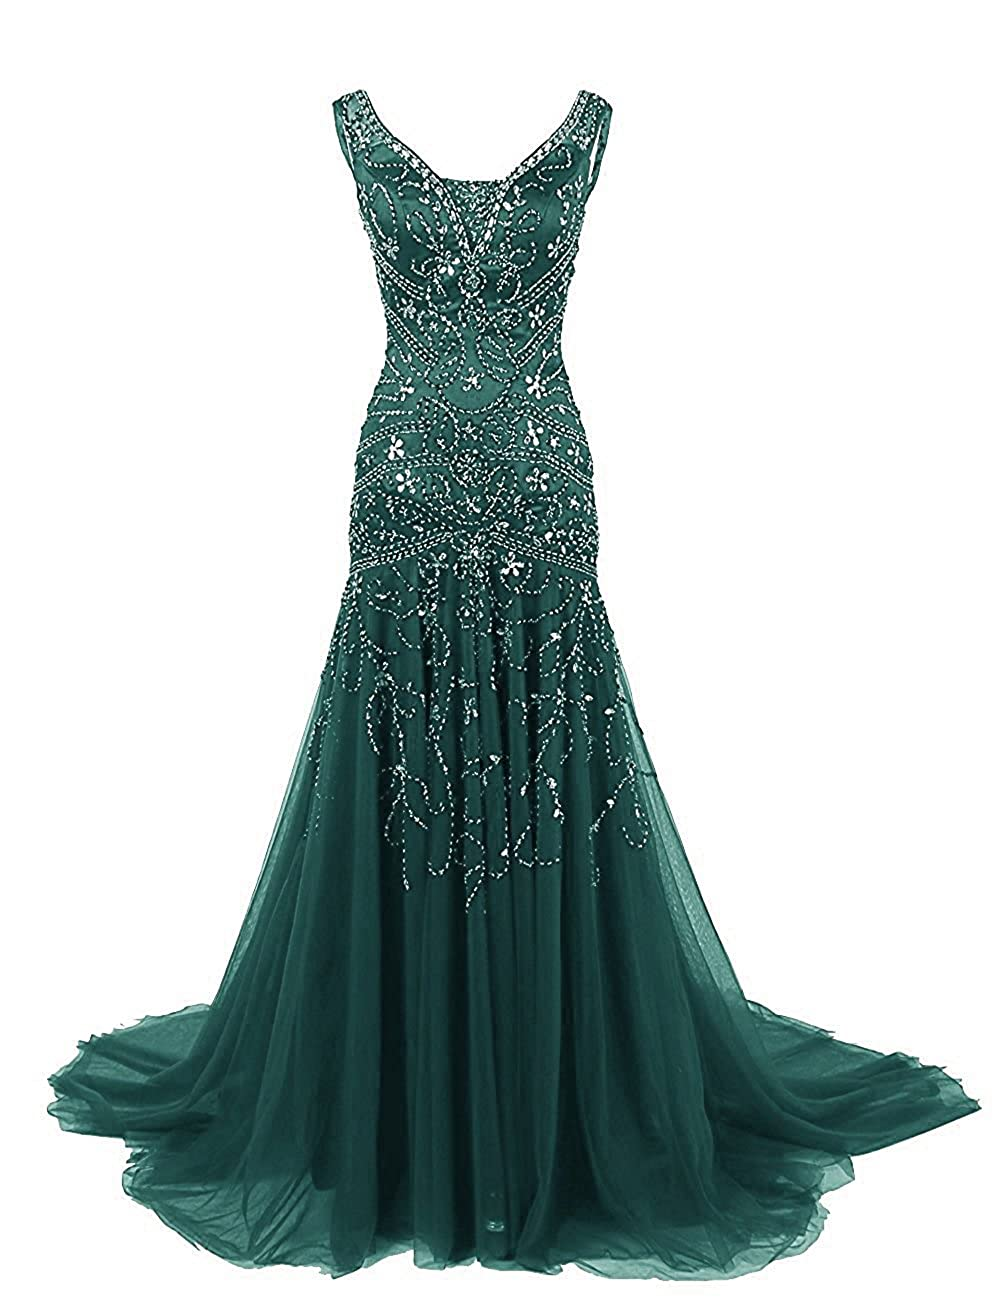 Dark Green Ellenhouse Women's Long Mermaid Mother of Bride Dress Beaded Prom Ball Gowns